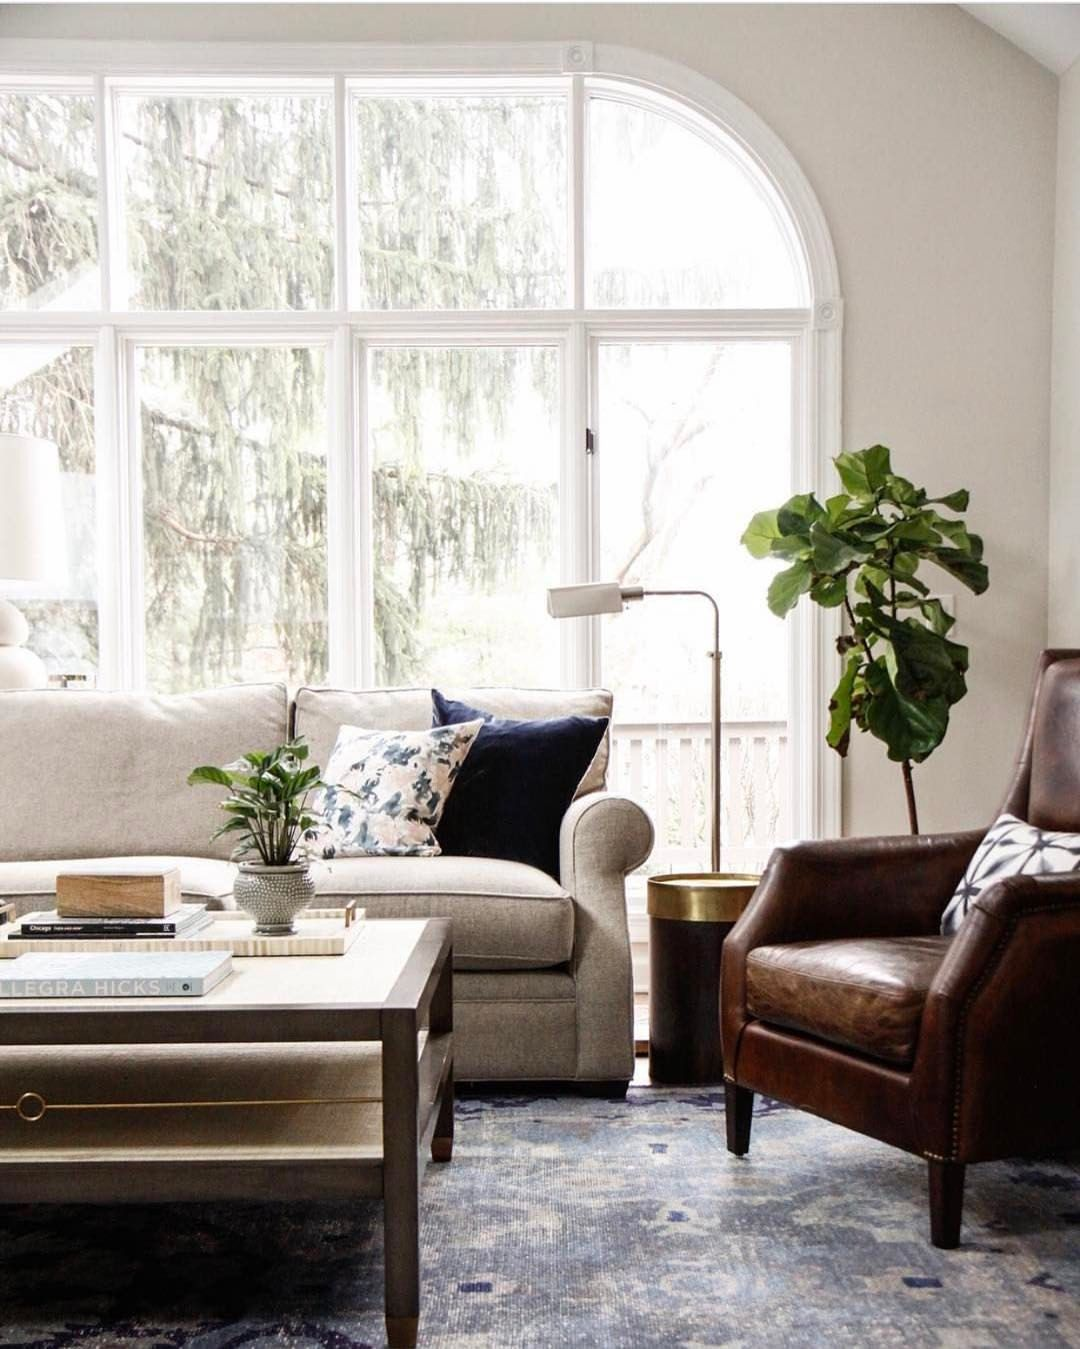 Light and bright transitional living room | See this Instagram photo ...